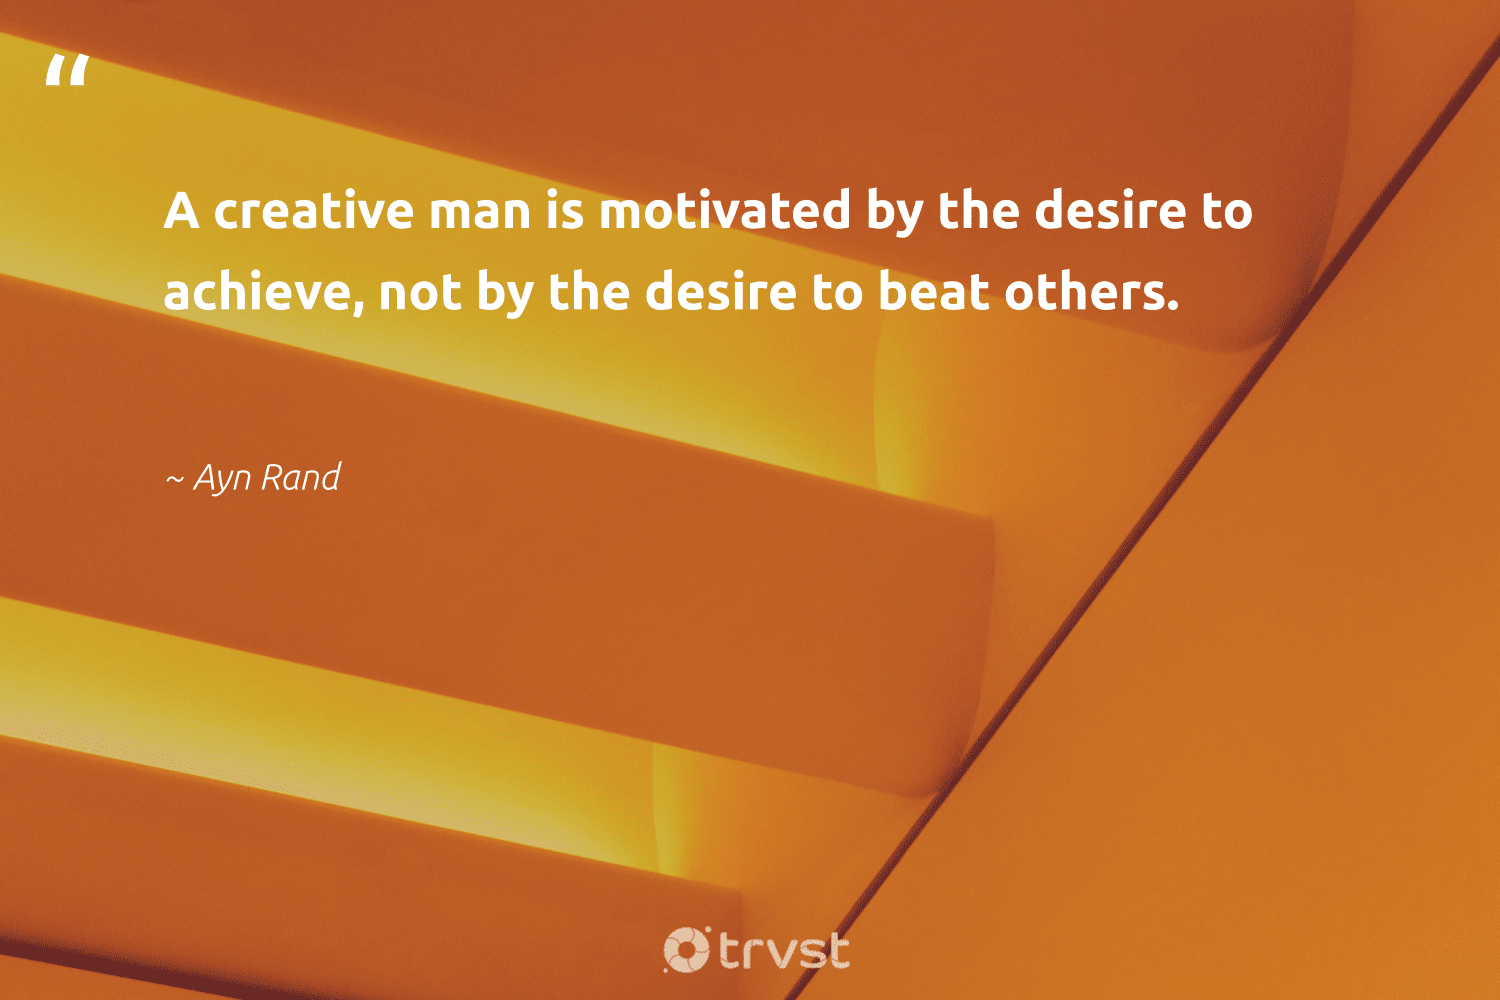 """""""A creative man is motivated by the desire to achieve, not by the desire to beat others.""""  - Ayn Rand #trvst #quotes #creativity #creative #futureofwork #softskills #changetheworld #sketchbook #nevergiveup #begreat #bethechange #designinspiration"""